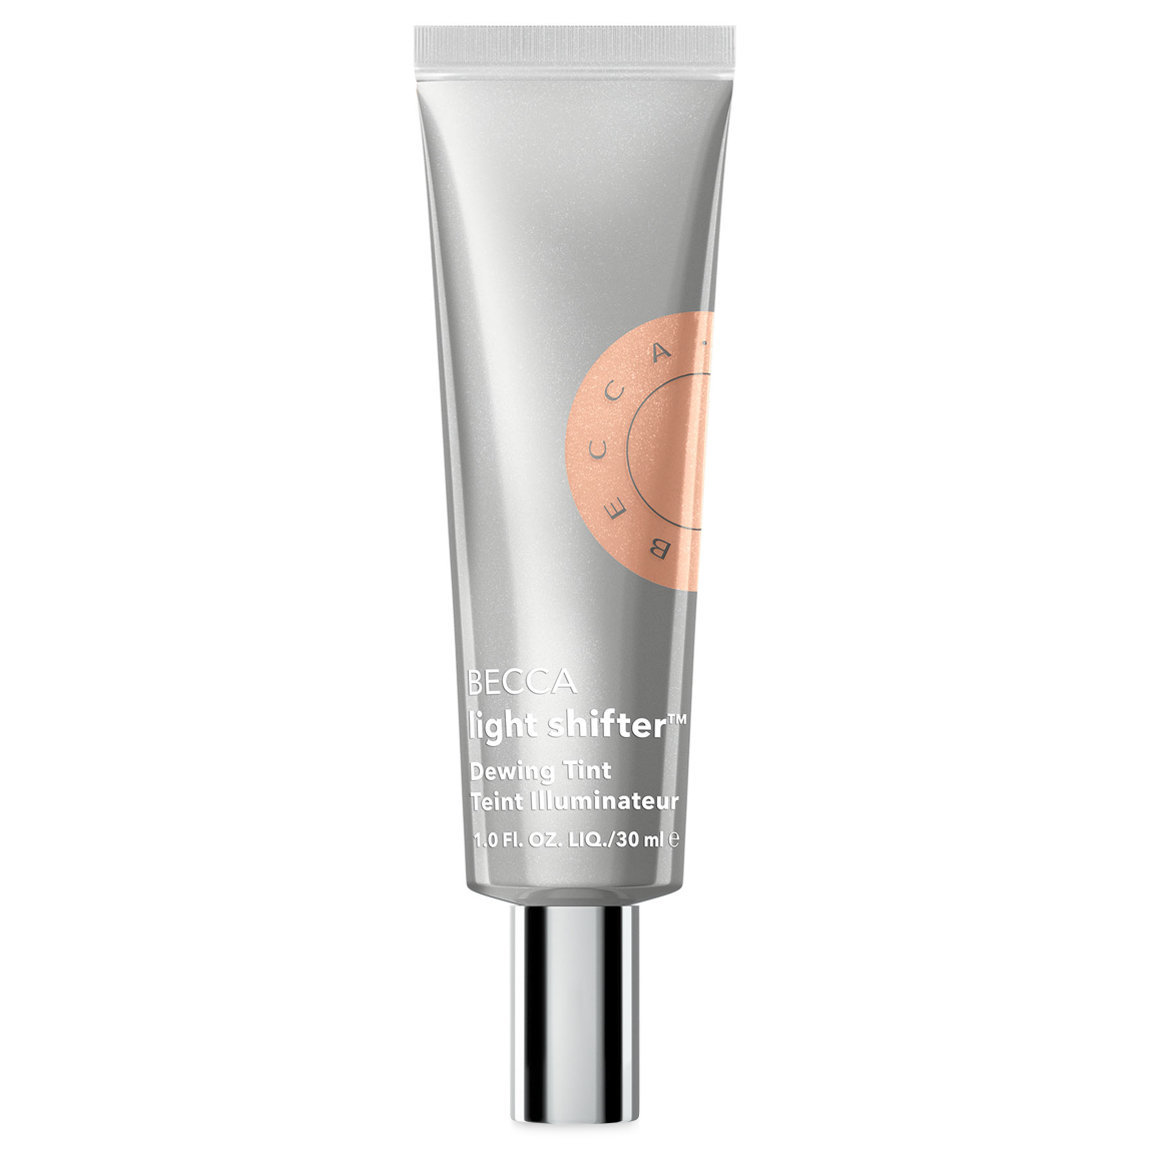 BECCA Cosmetics Light Shifter Dewing Tint Luminary 1 alternative view 1.